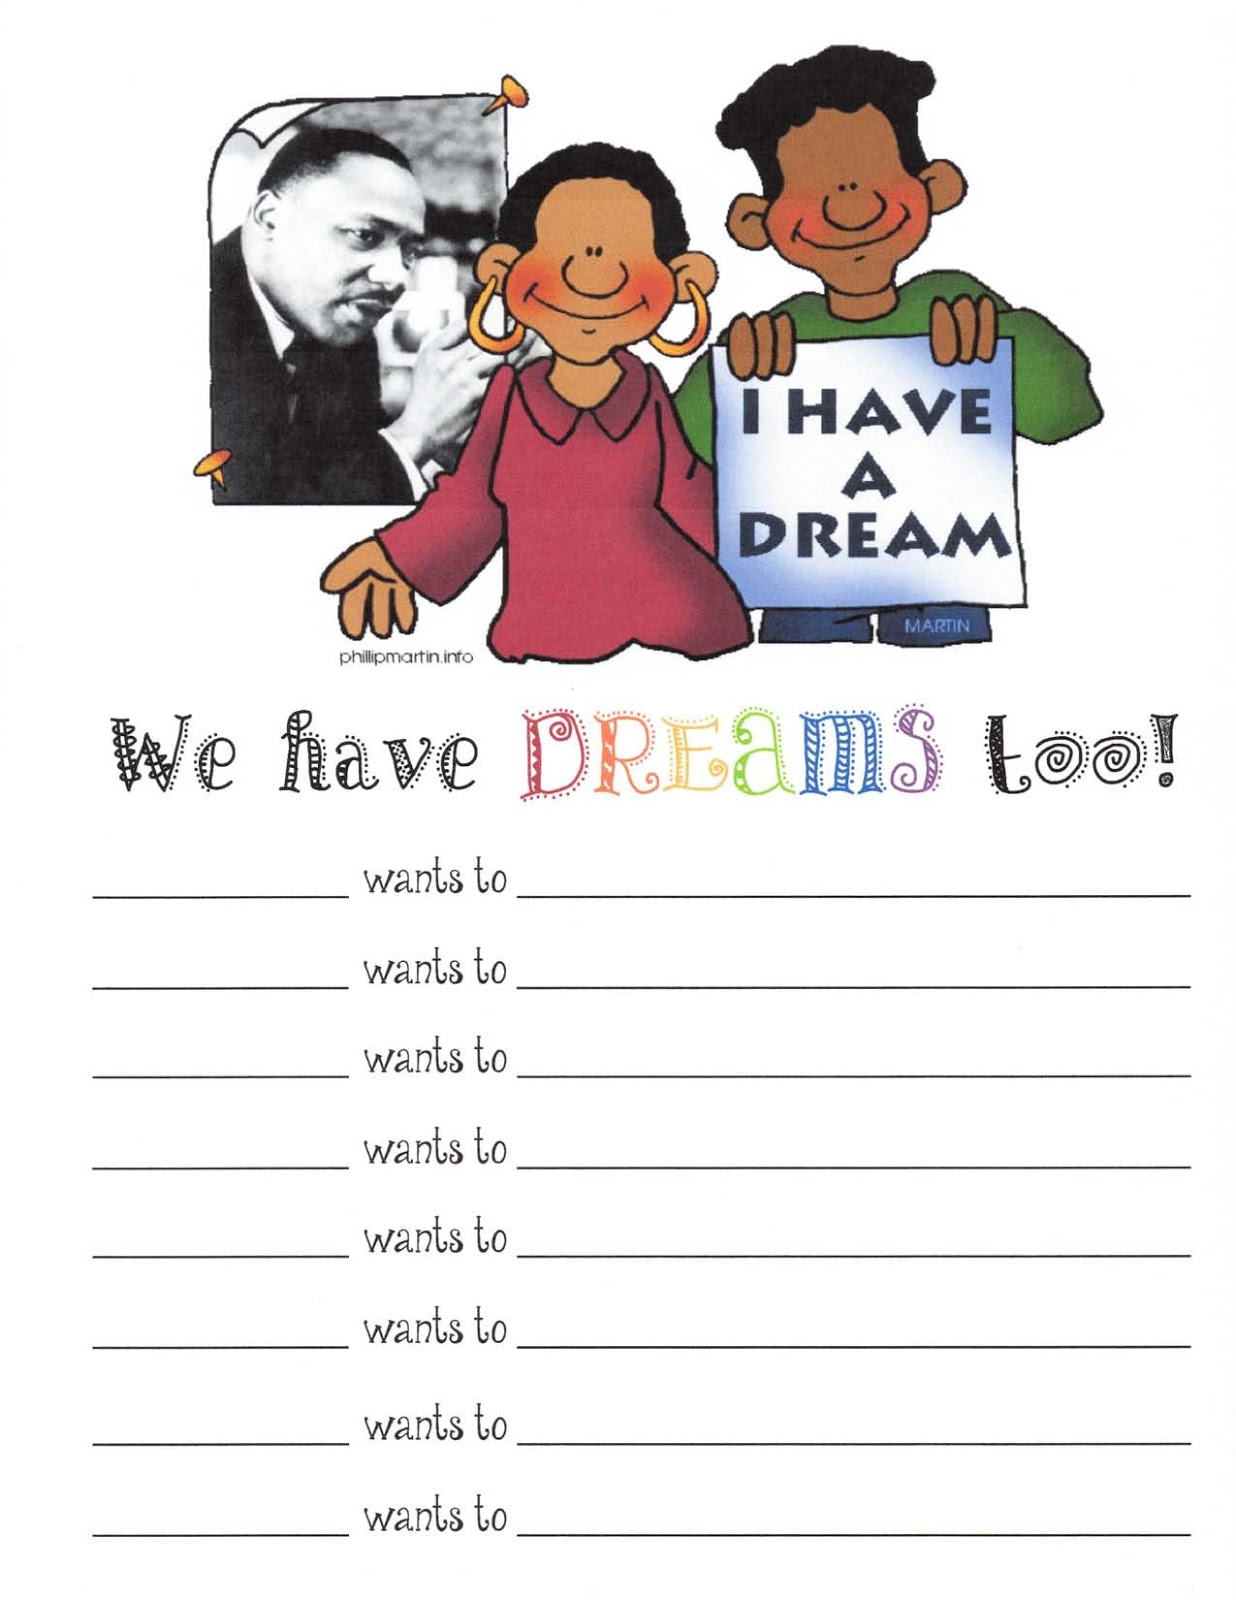 martin luther king i have a dream speech analysis essay 91 121 martin luther king i have a dream speech analysis essay